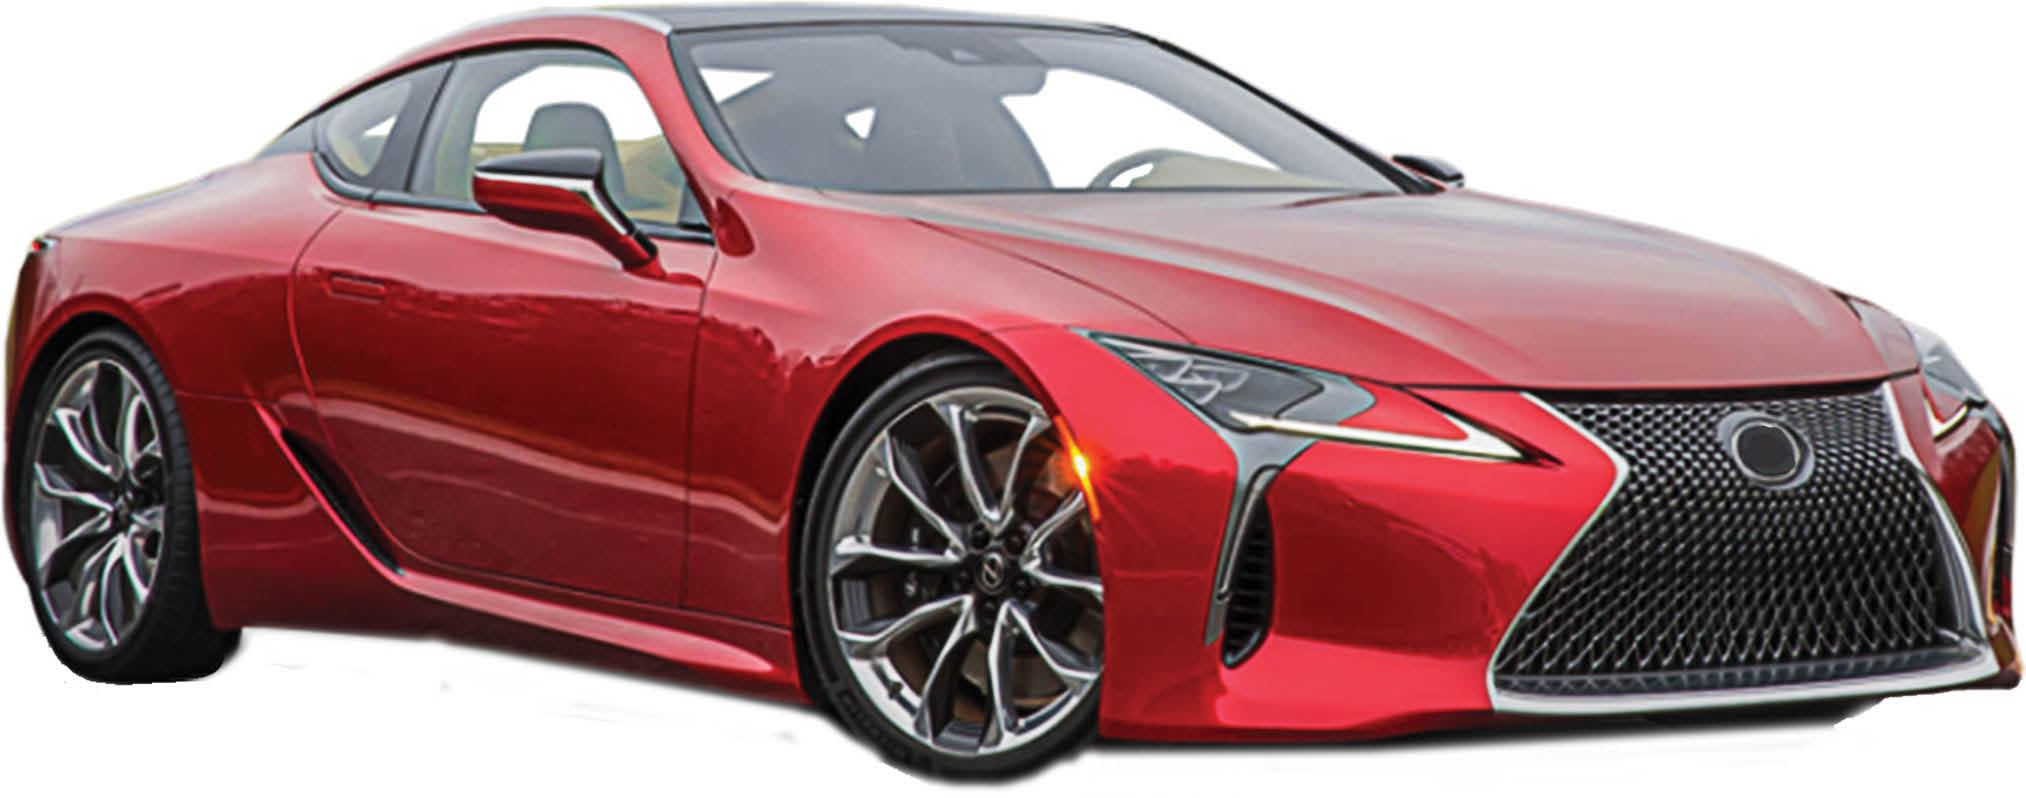 Auto repair services at discount prices for sports cars and most makes and models